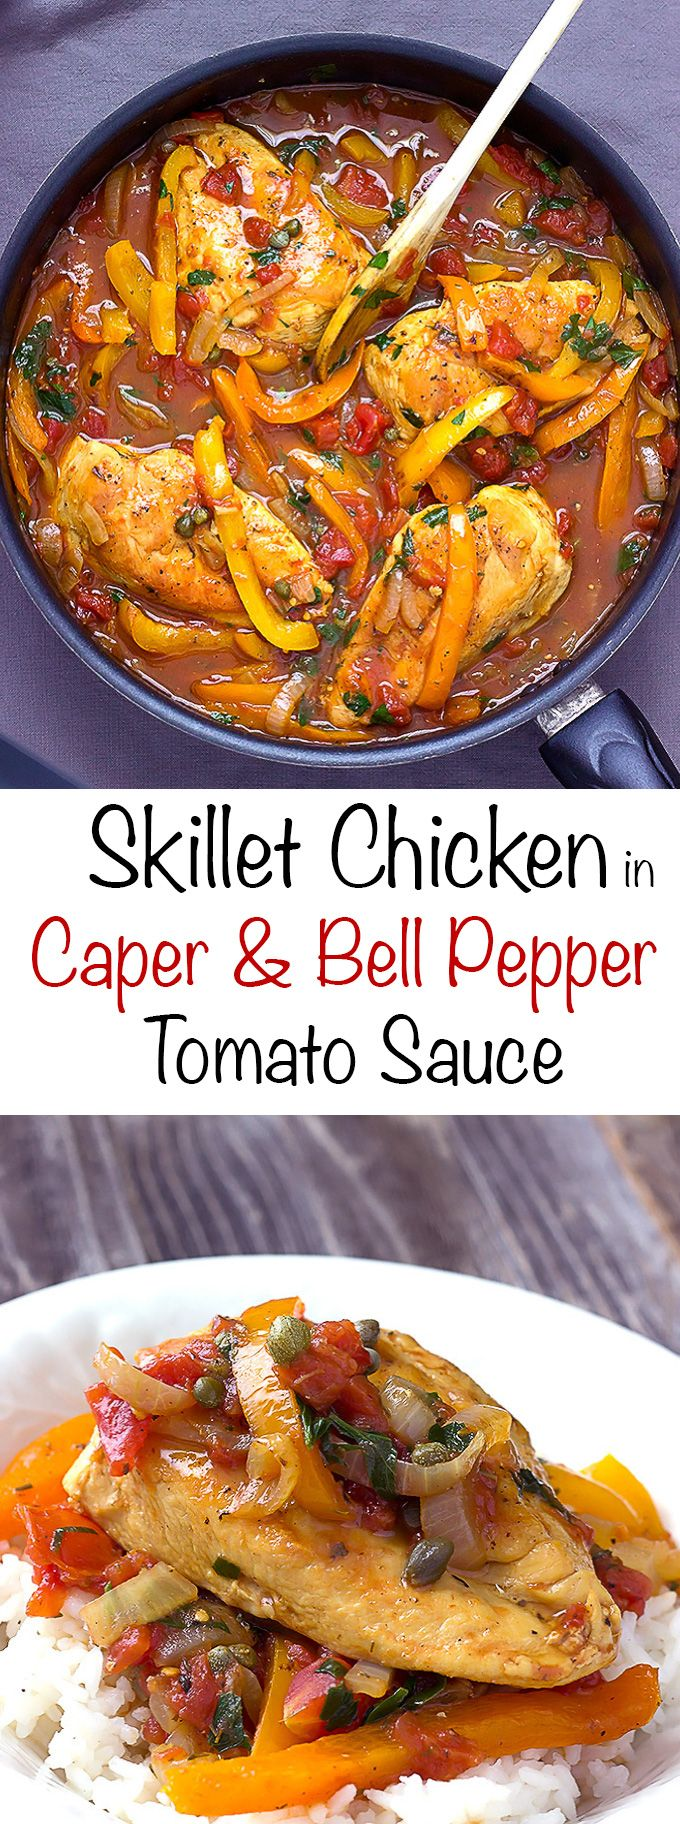 Skillet chicken in caper sweet pepper tomato sauce - A simple chicken dinner with a flavorful tomato sauce with salty capers and sweet bell peppers.  Perfect served over rice, mashed potatoes, pasta, or with crusty bread.